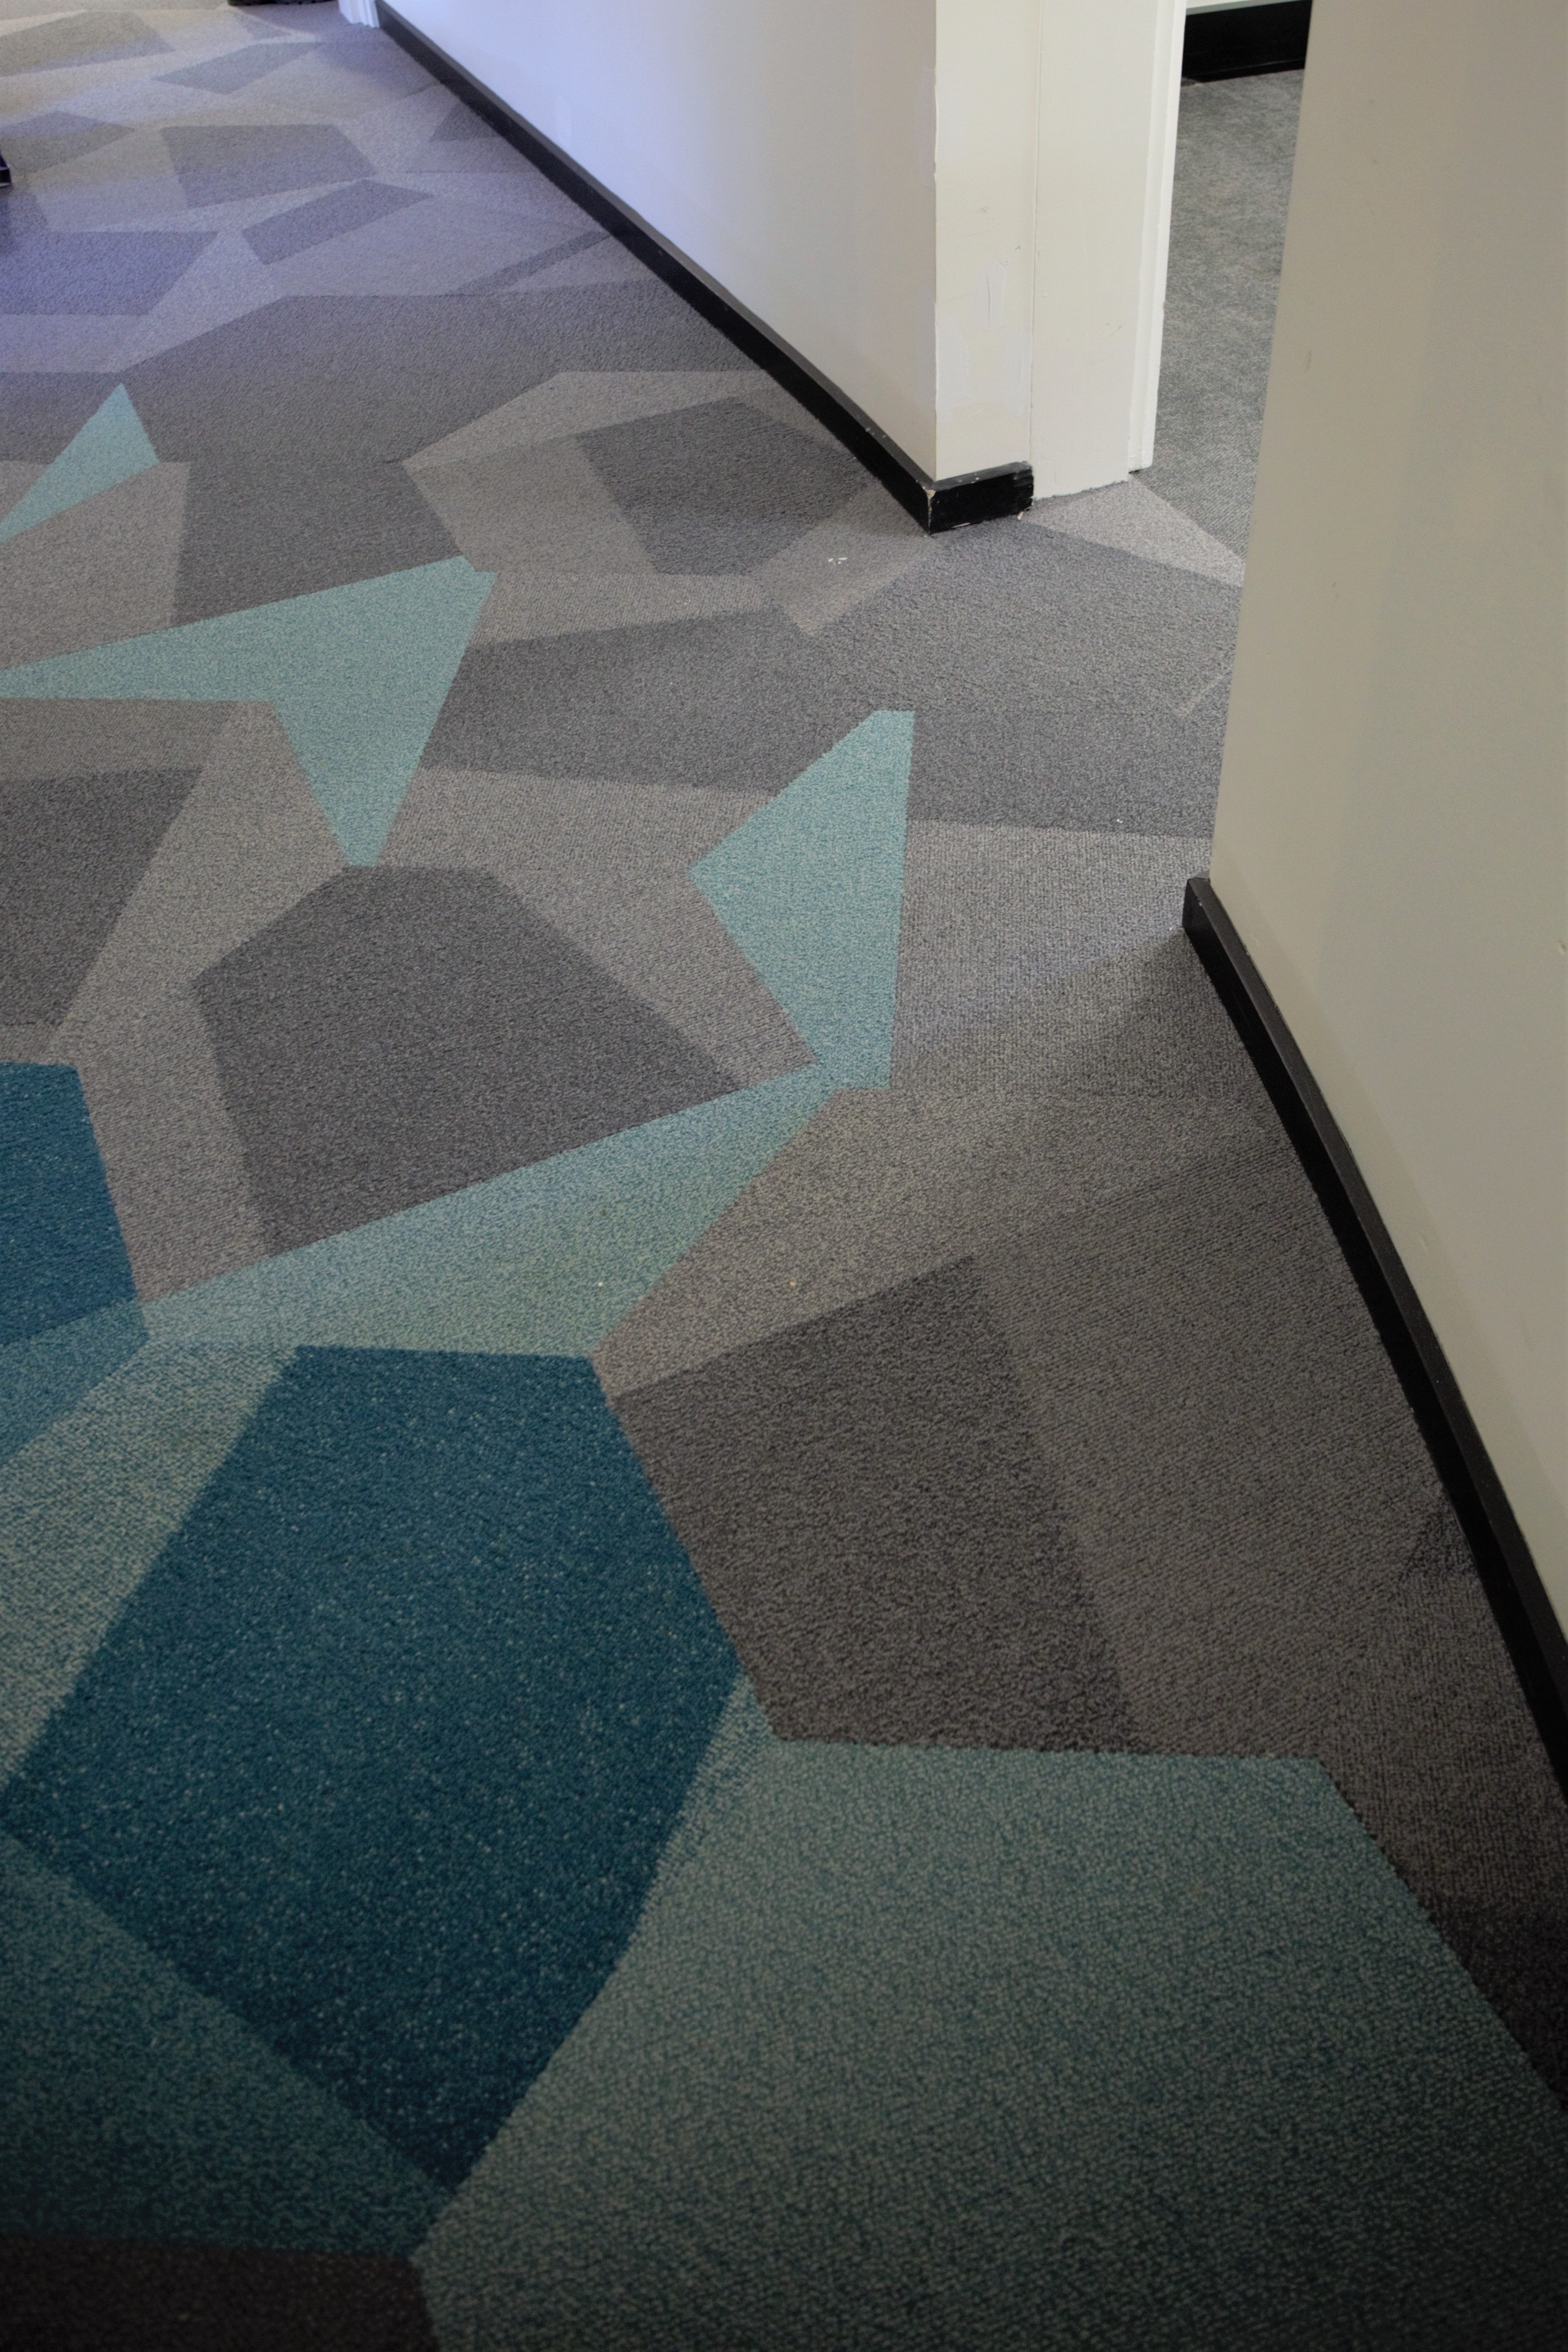 Level 2 teal carpet - Coombs building